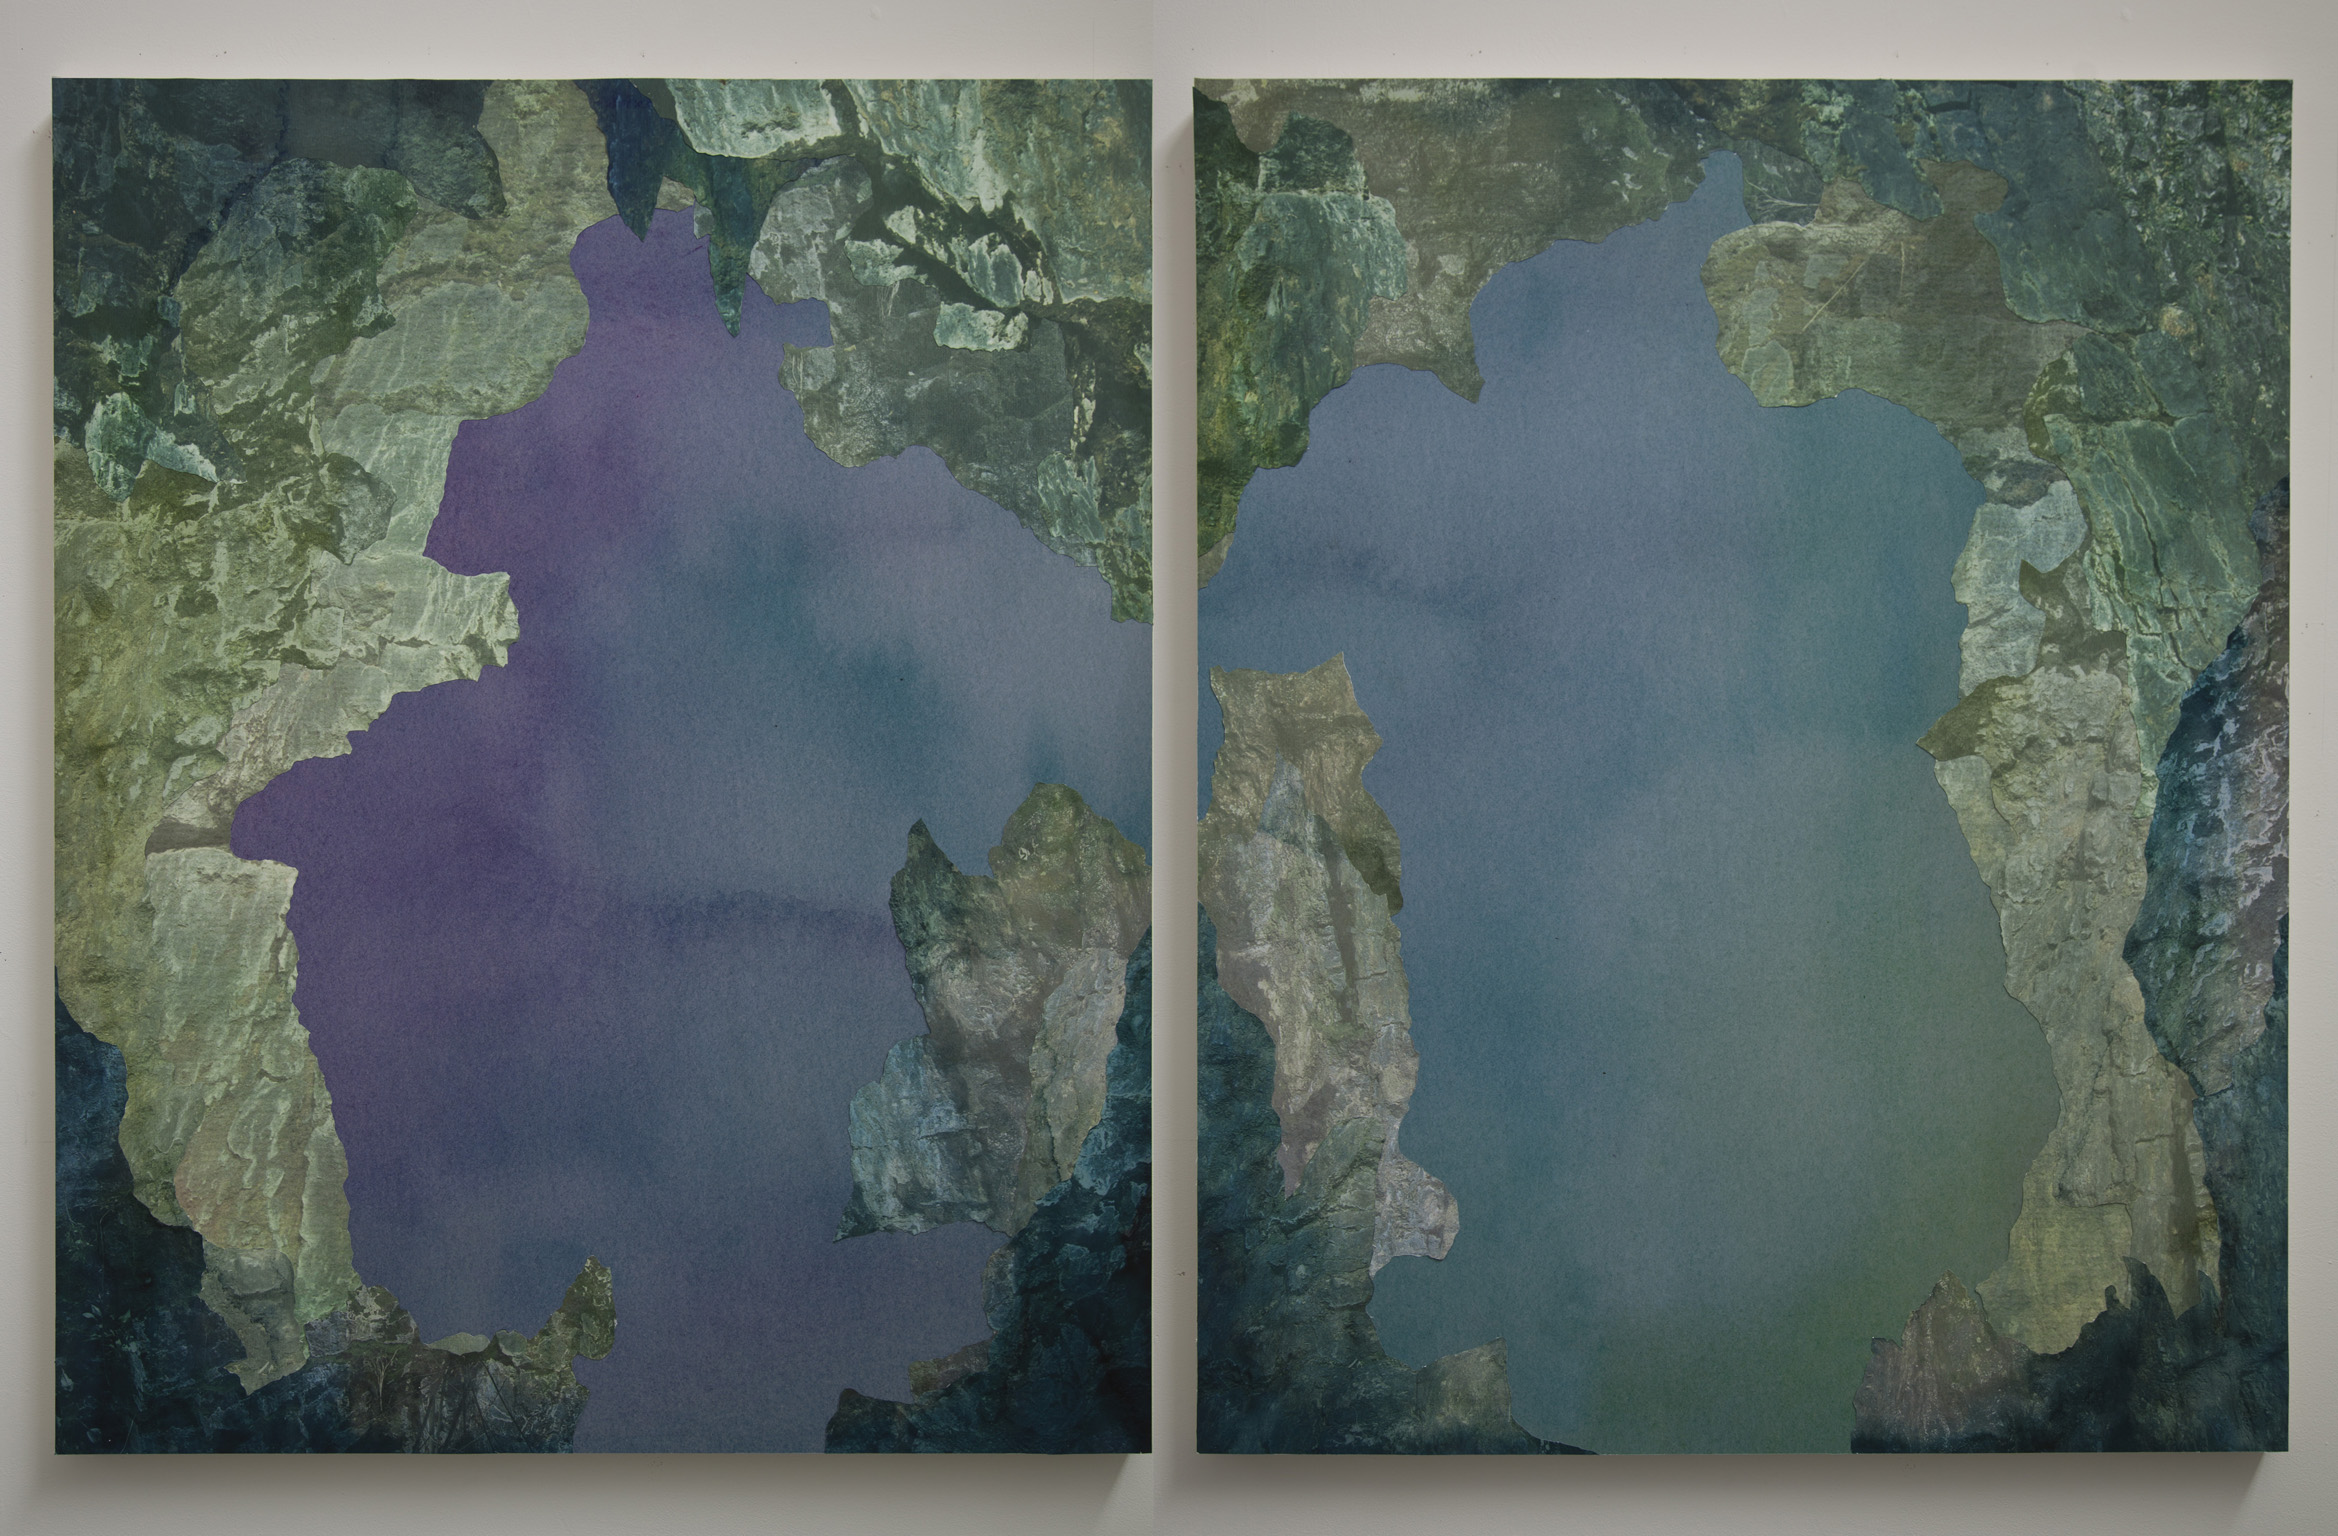 """Cavern Diptych,  archival pigment prints, collage on panel, 54"""" x 43"""" each, 2012."""